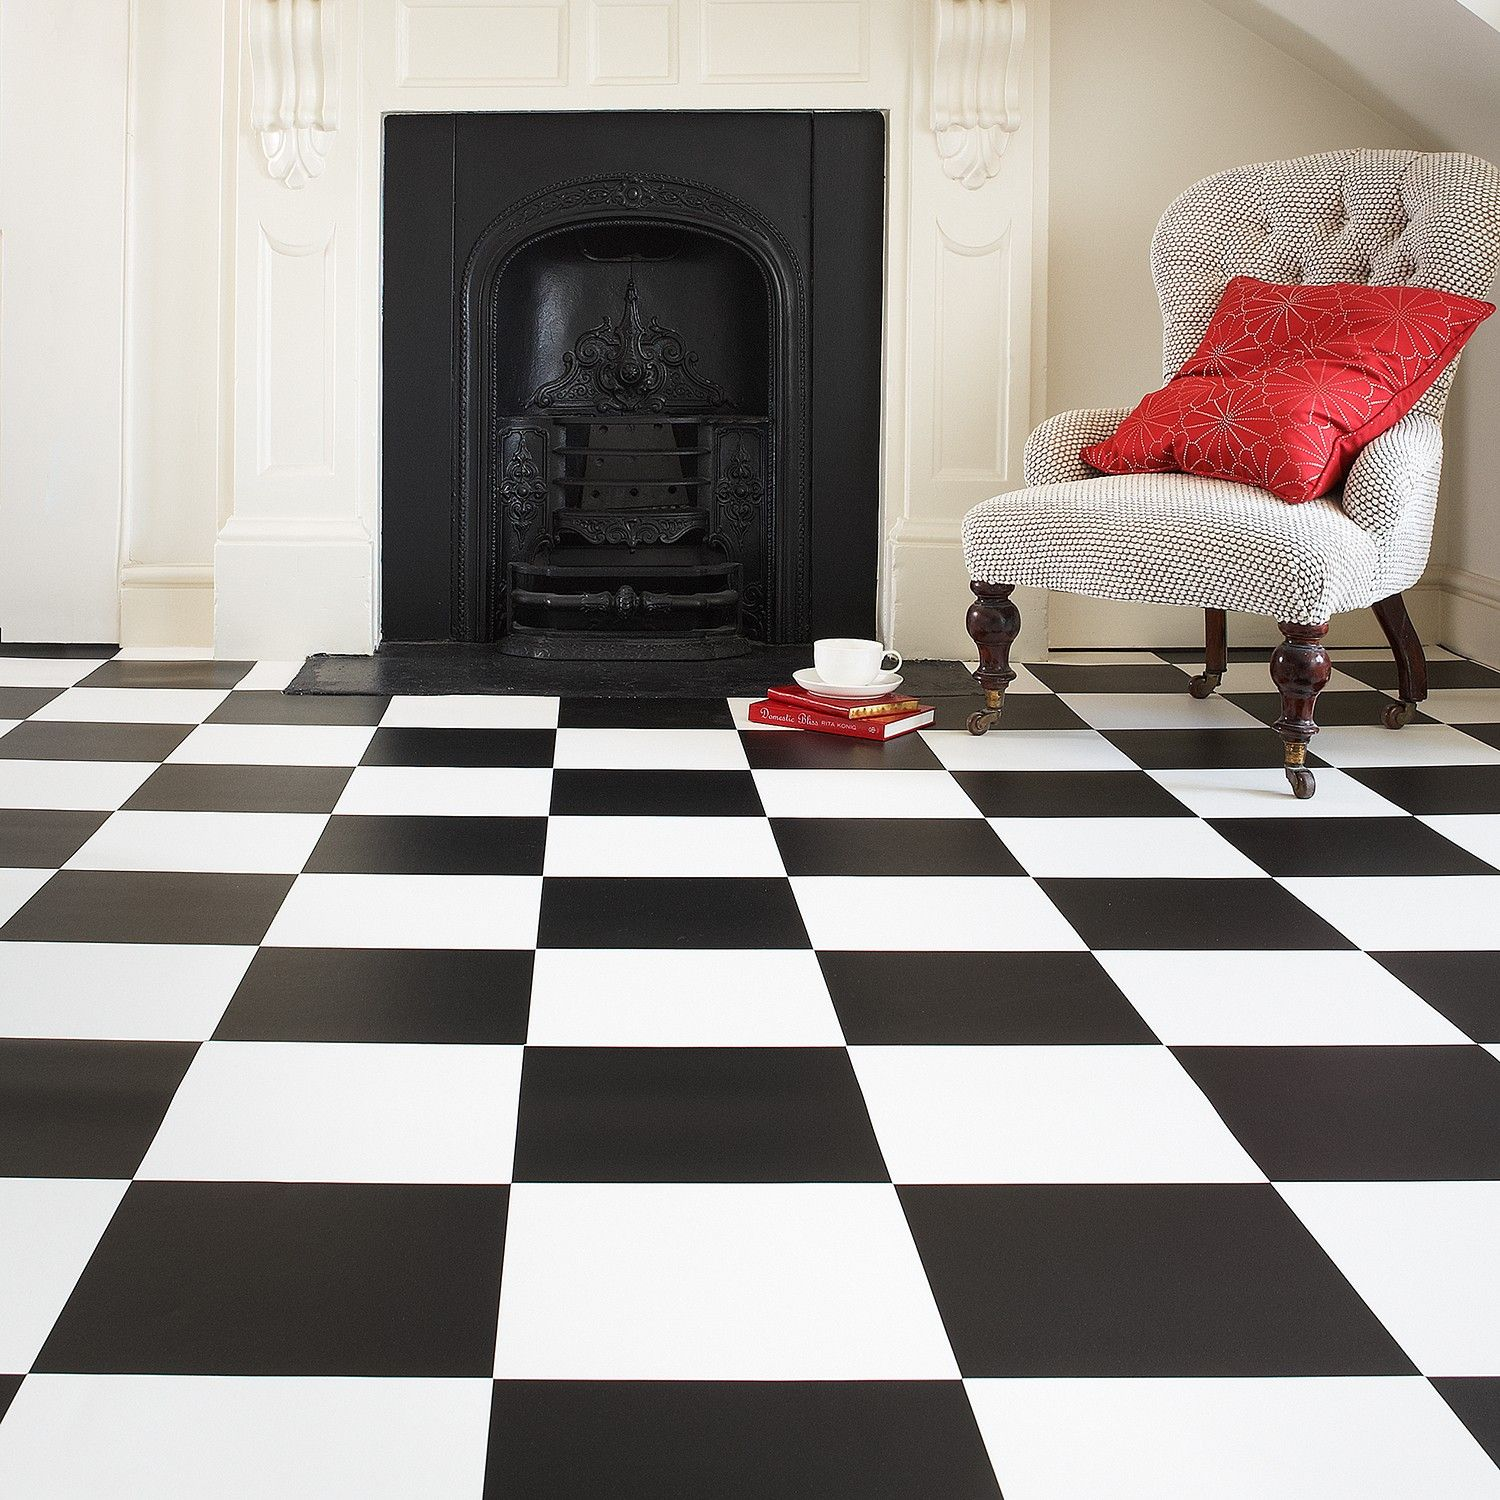 Black and white vinyl floor tiles choice image tile flooring rhino classic echiquier blackwhite chequered vinyl flooring 10 rhino classic echiquier blackwhite chequered vinyl flooring doublecrazyfo doublecrazyfo Images